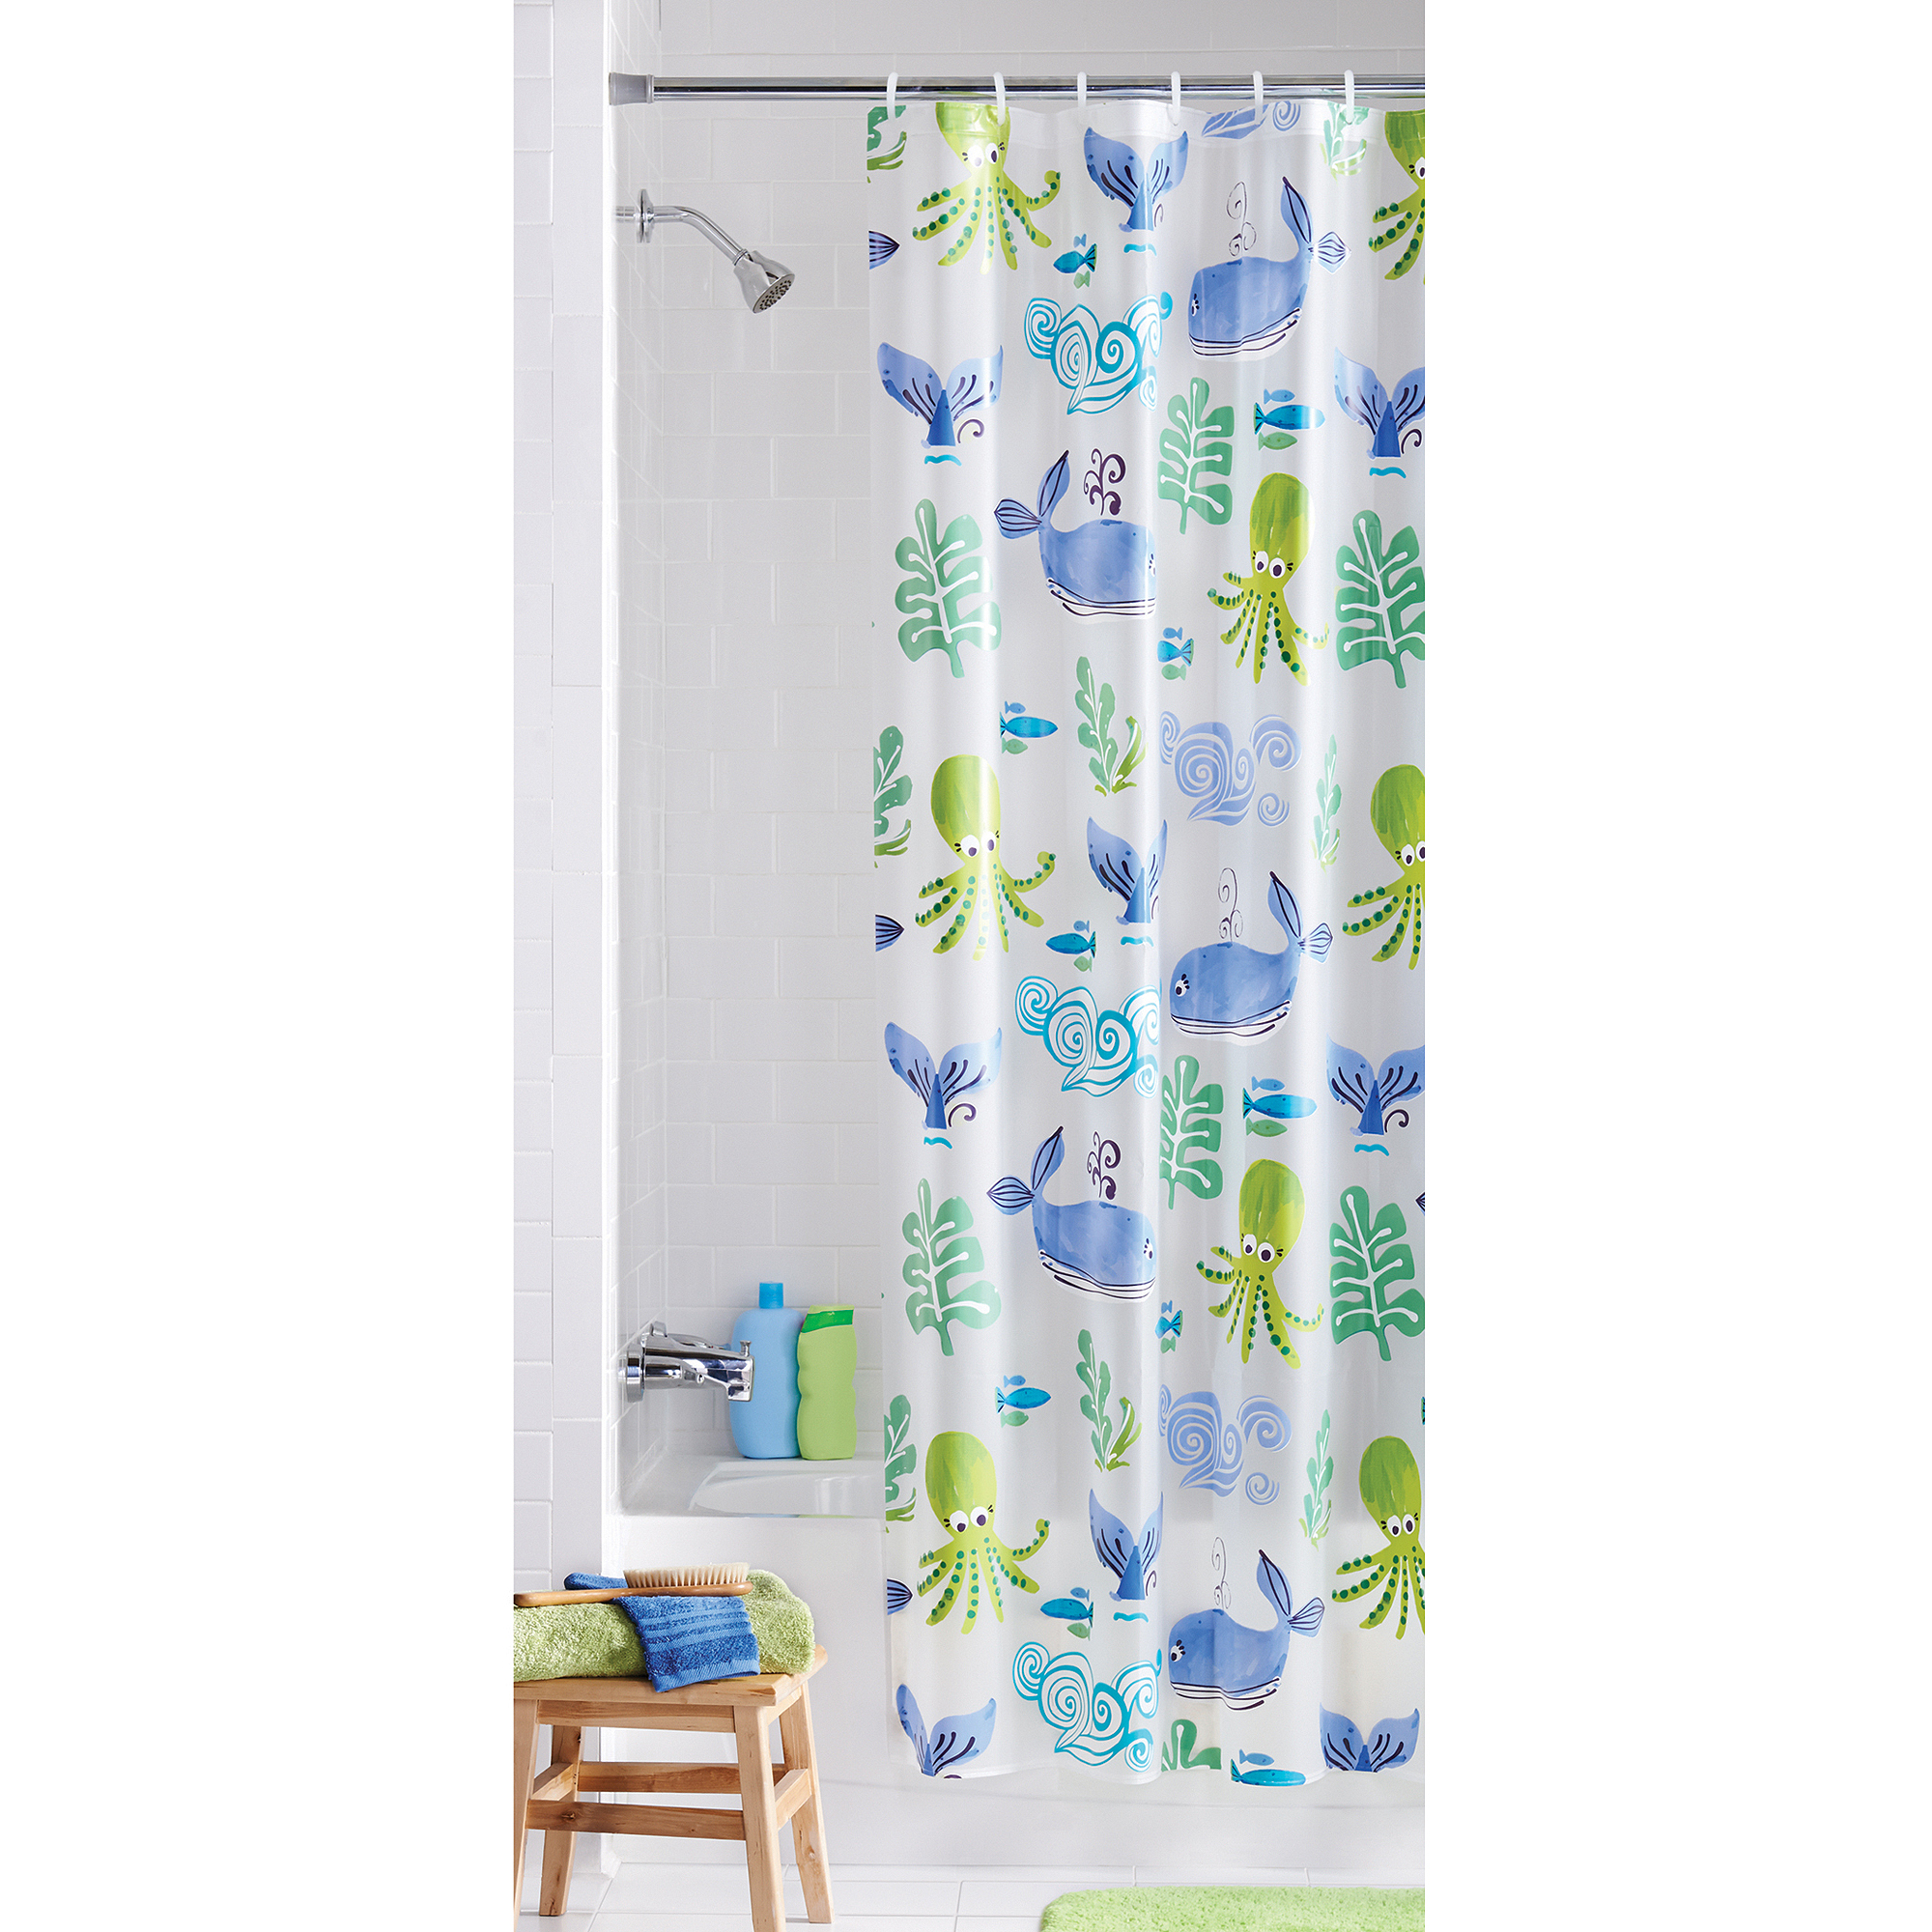 Are Peva Shower Curtain Liners Safe • Shower Curtains Ideas